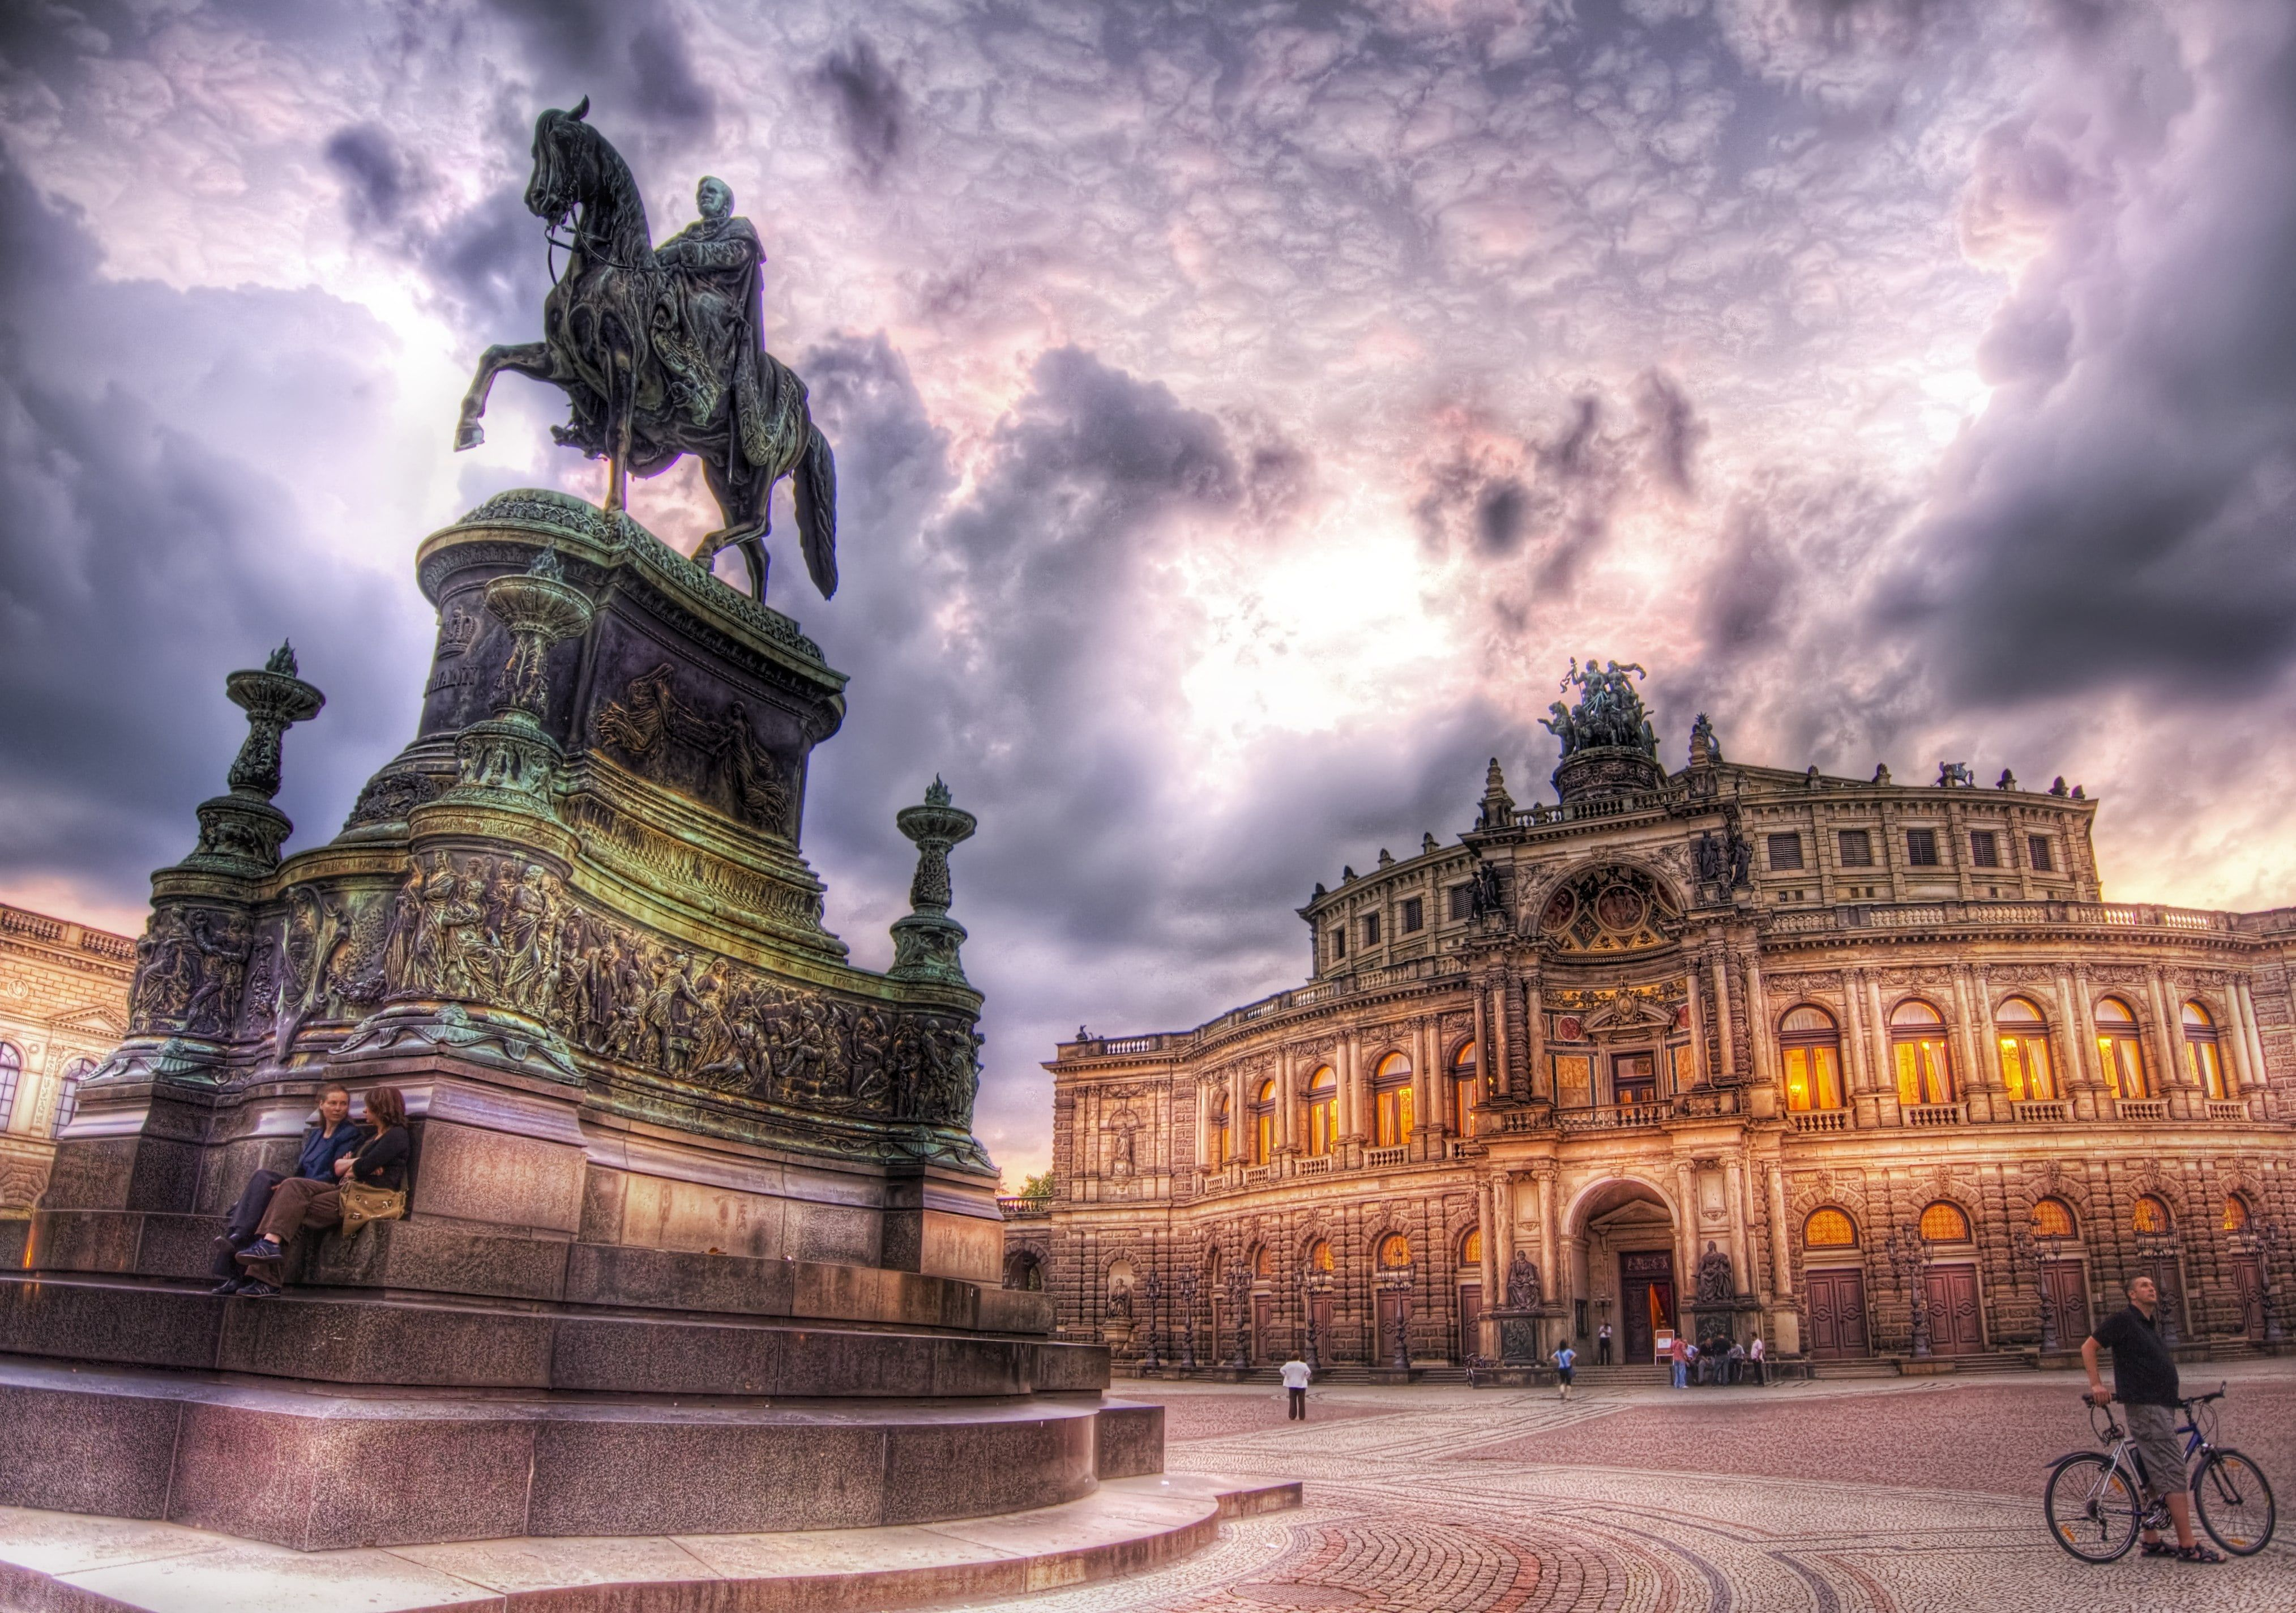 Man riding horse statue beside palace, dresden HD wallpapers